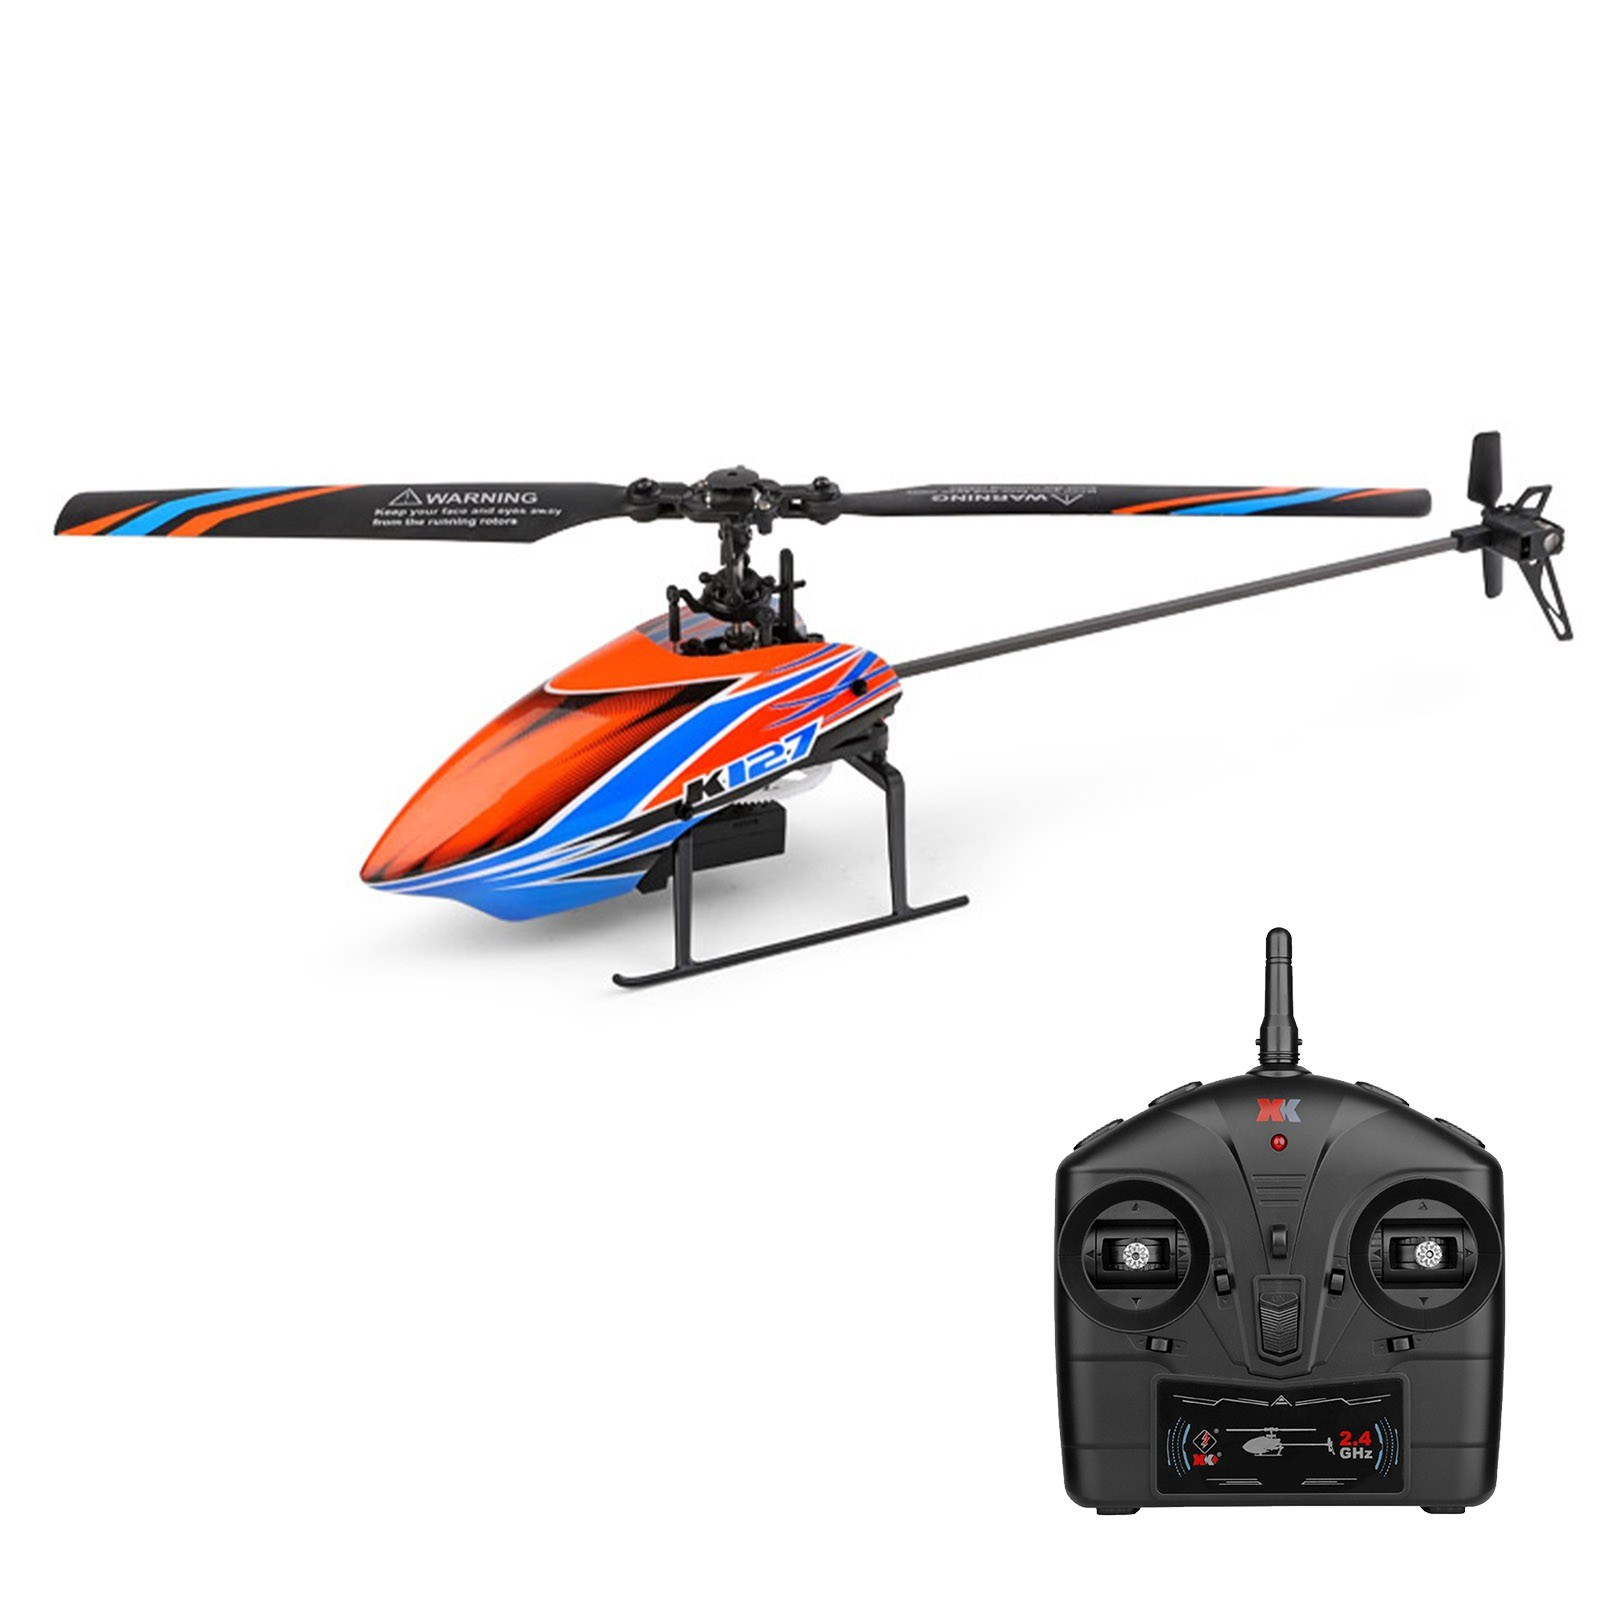 Tomtop - 53% OFF WLtoys K127 2.4G 4CH RC Helicopter 6-axis Gyro Single Blade, Free Shipping $61.99